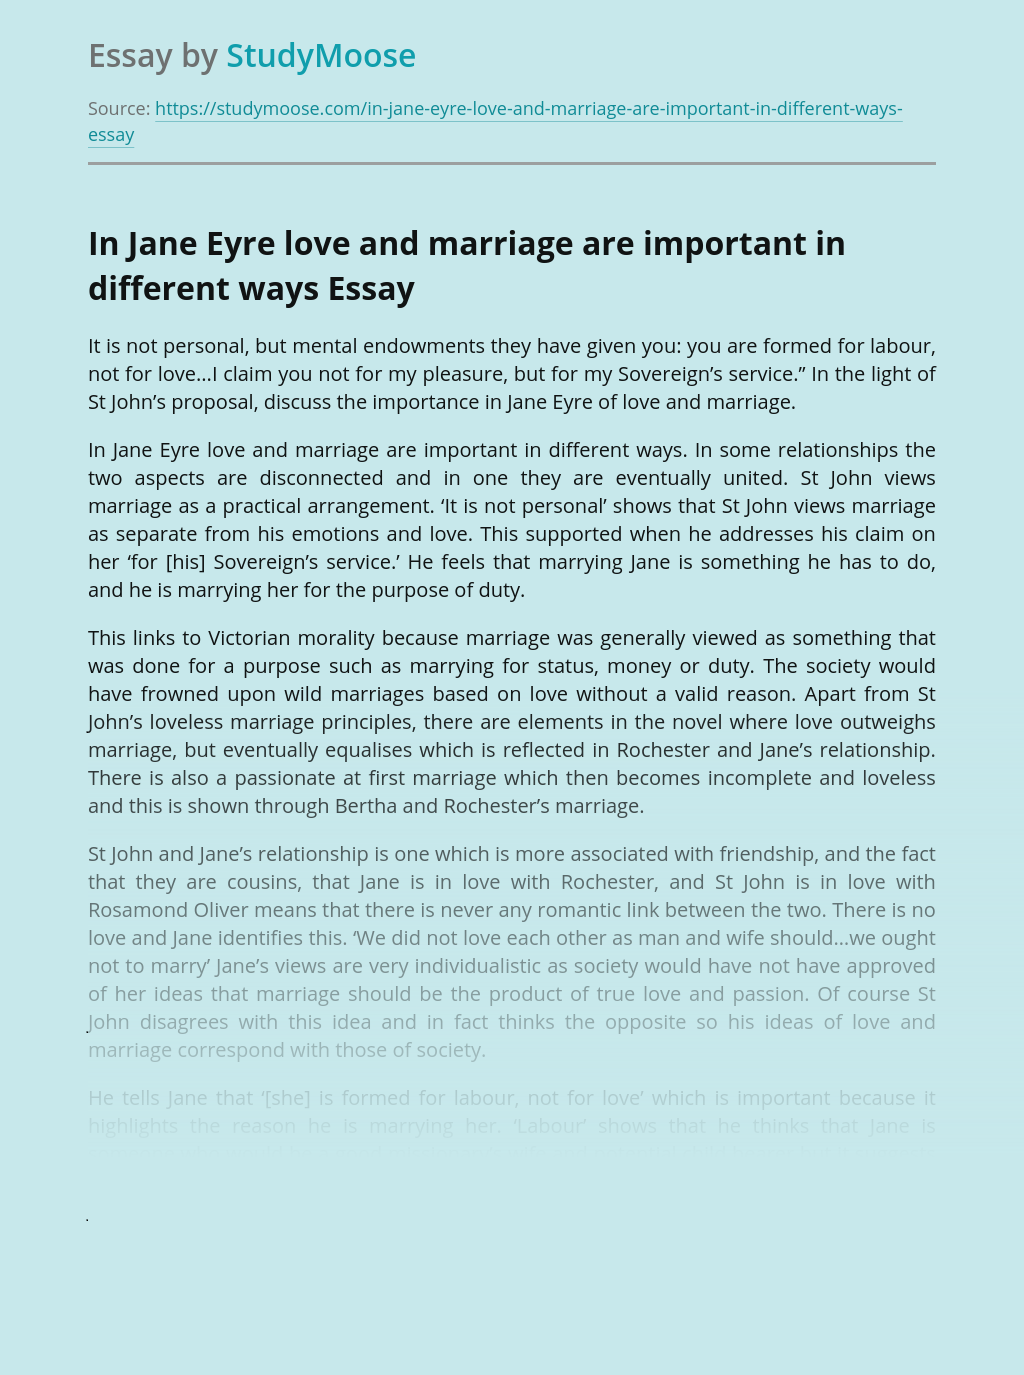 In Jane Eyre love and marriage are important in different ways